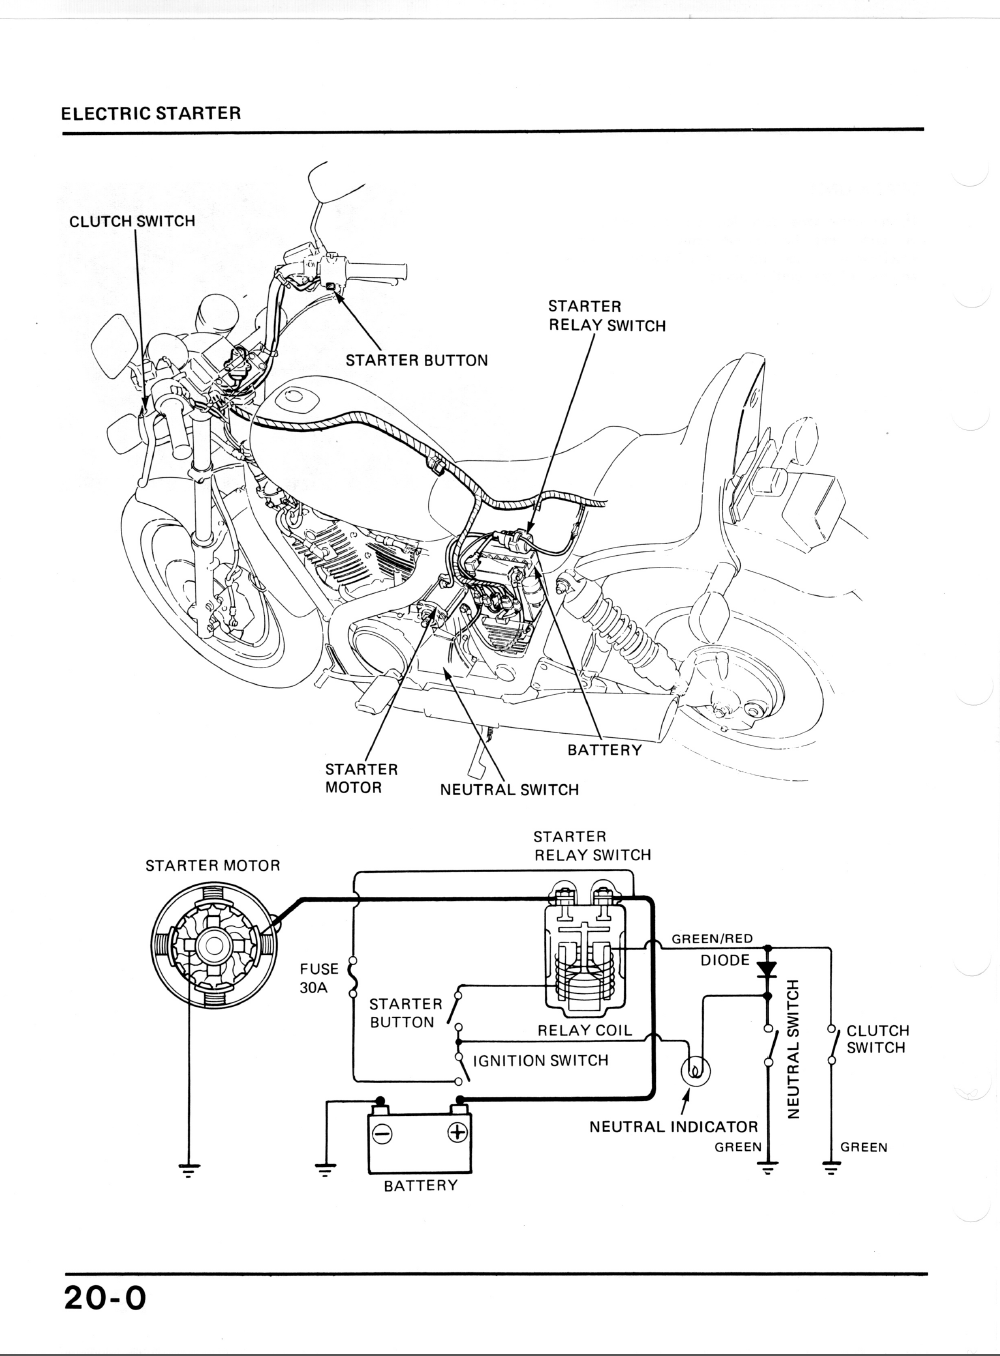 9266d1409799691 1984 honda shadow 700 electric stater 1984 honda shadow 700 vt commodore fuel pump wiring diagram at bayanpartner.co